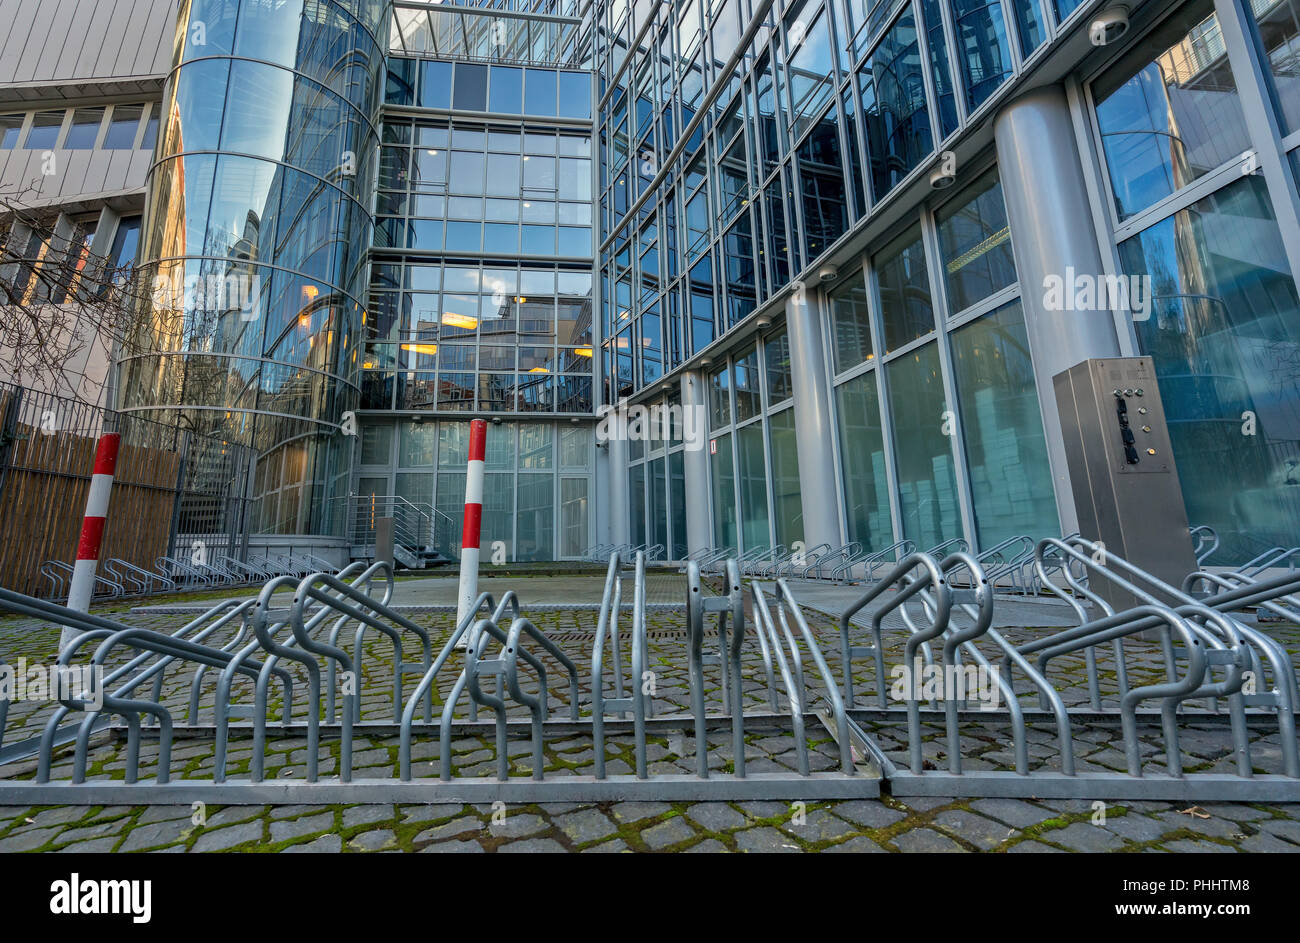 Bicycle parking Frame Stock Photo